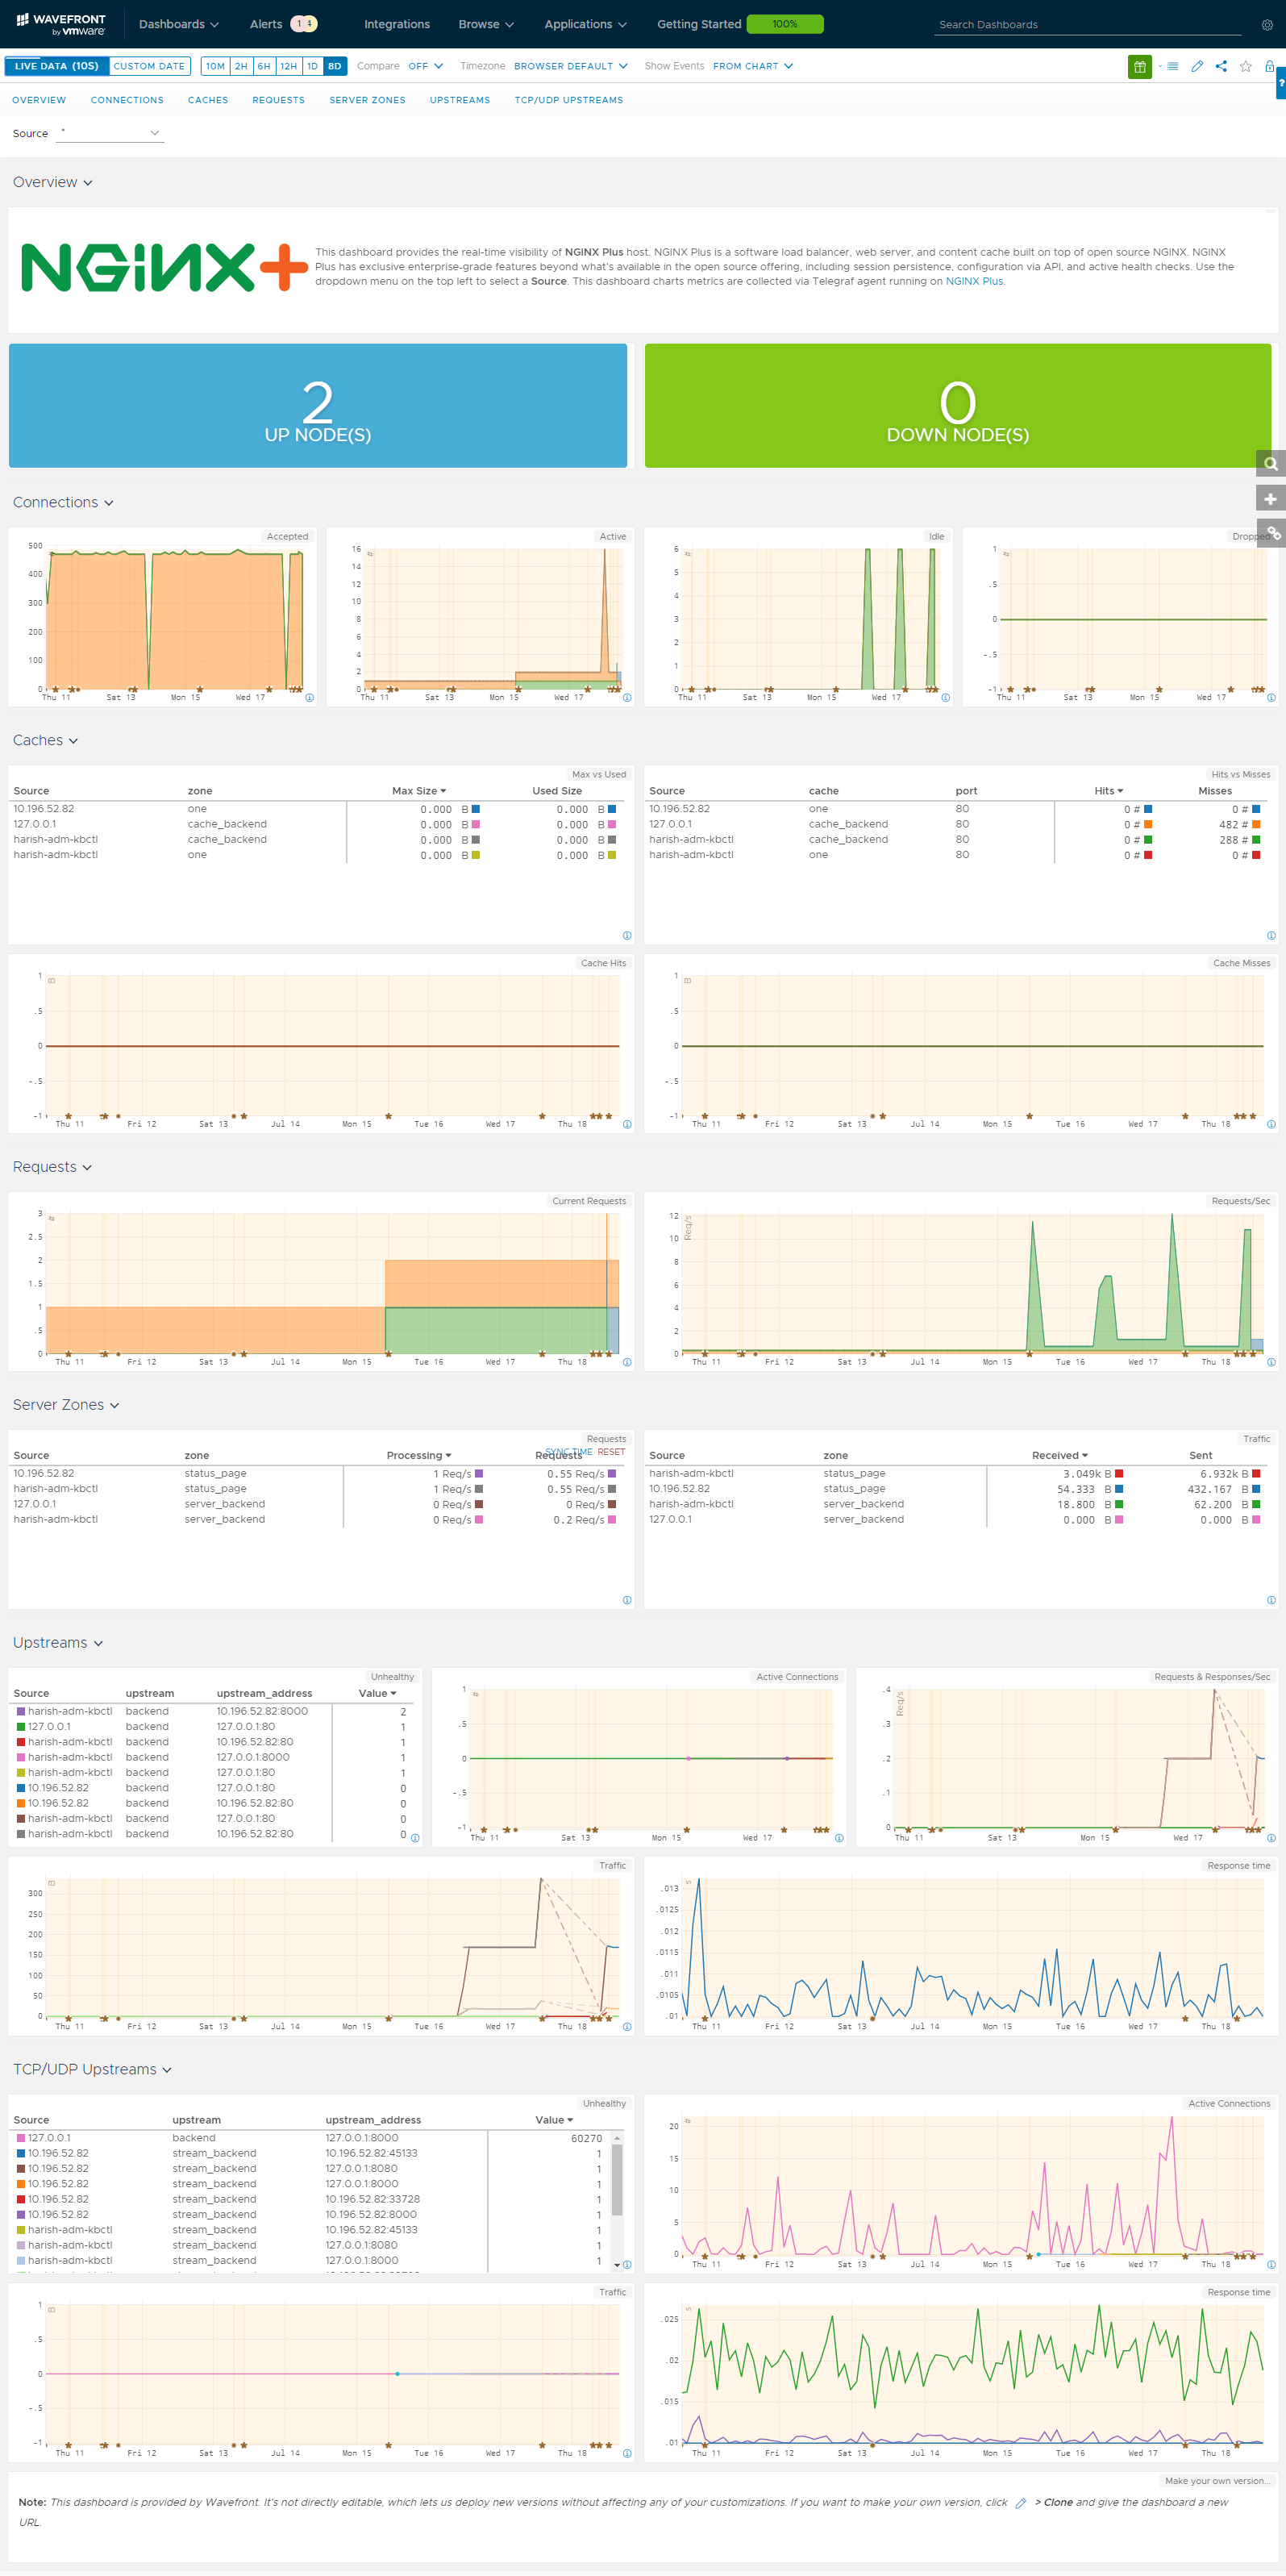 images/nginxp_dashboard.png